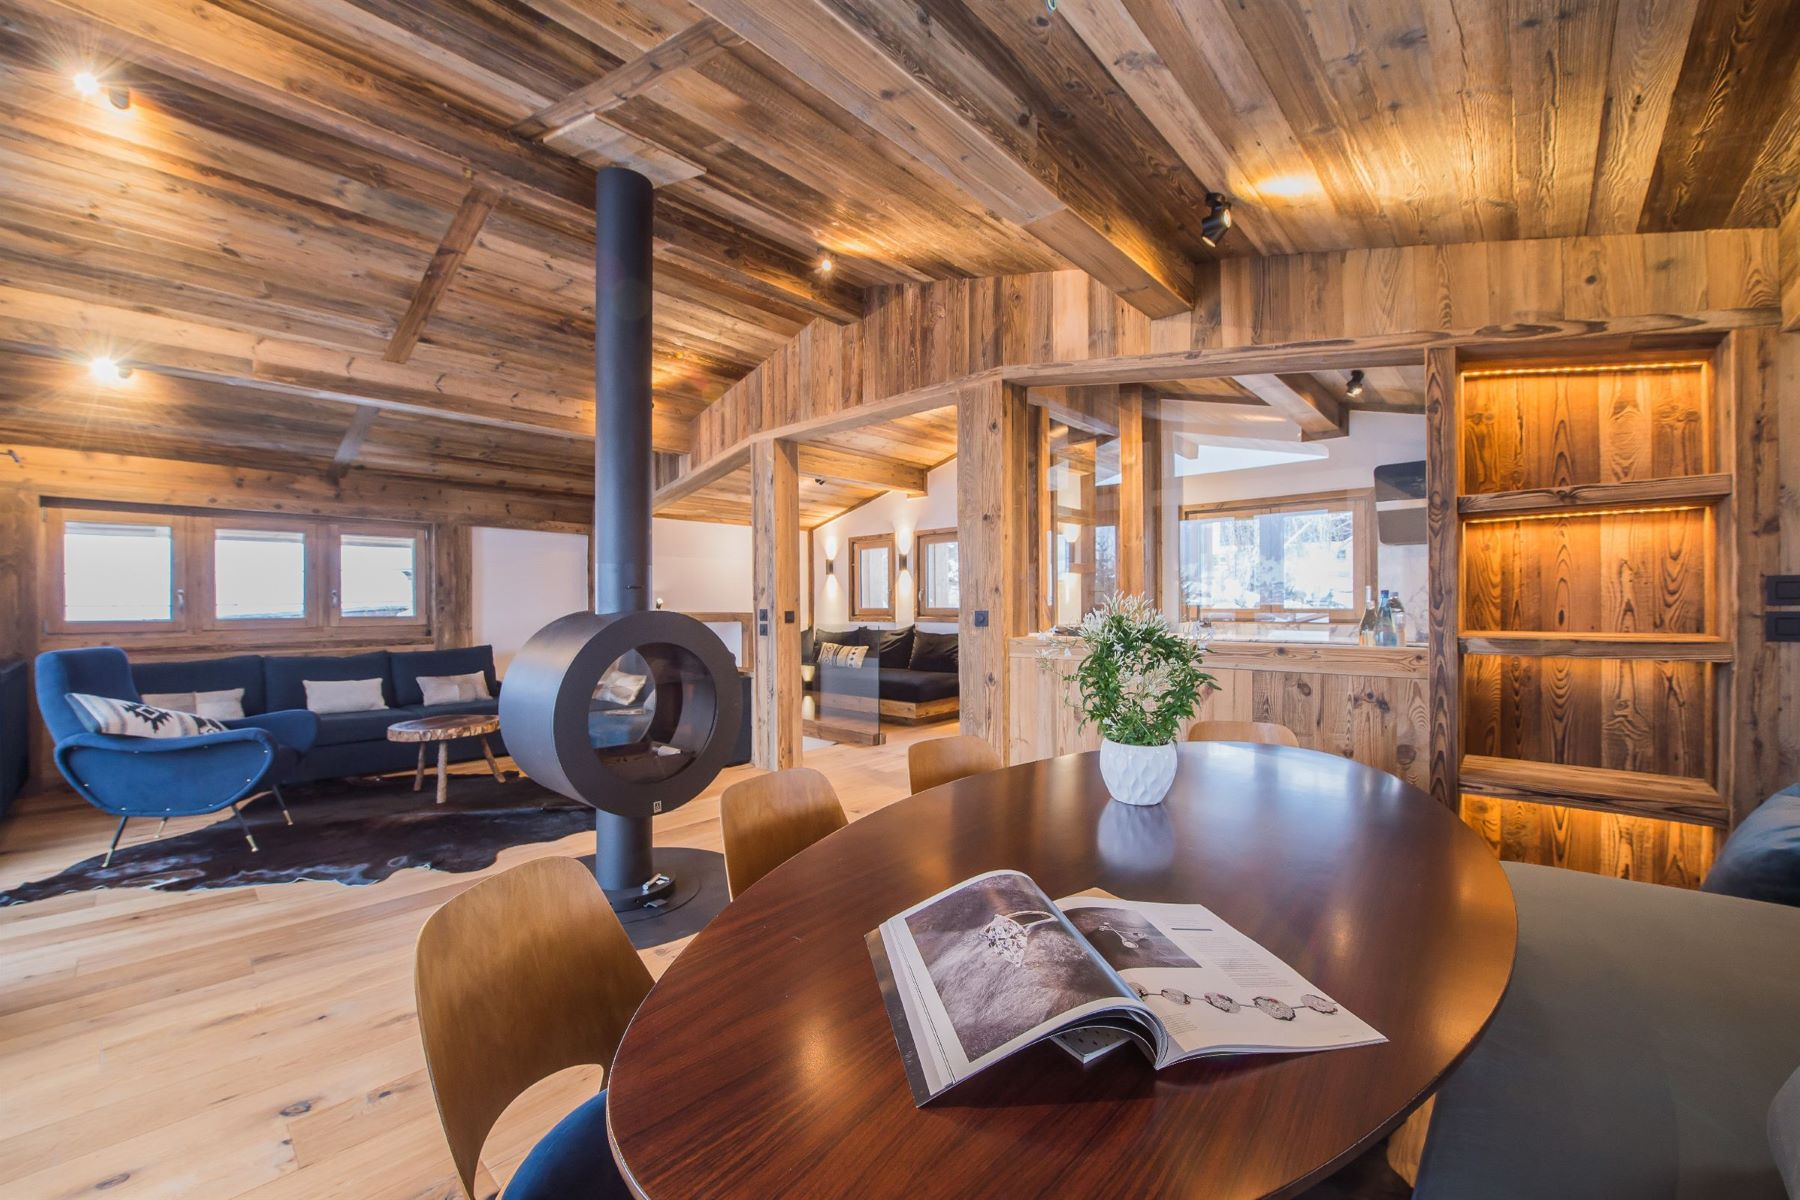 Single Family Homes for Sale at Luxury chalet close to the slopes in Megève - Alpine Megeve, Rhone-Alpes 74120 France